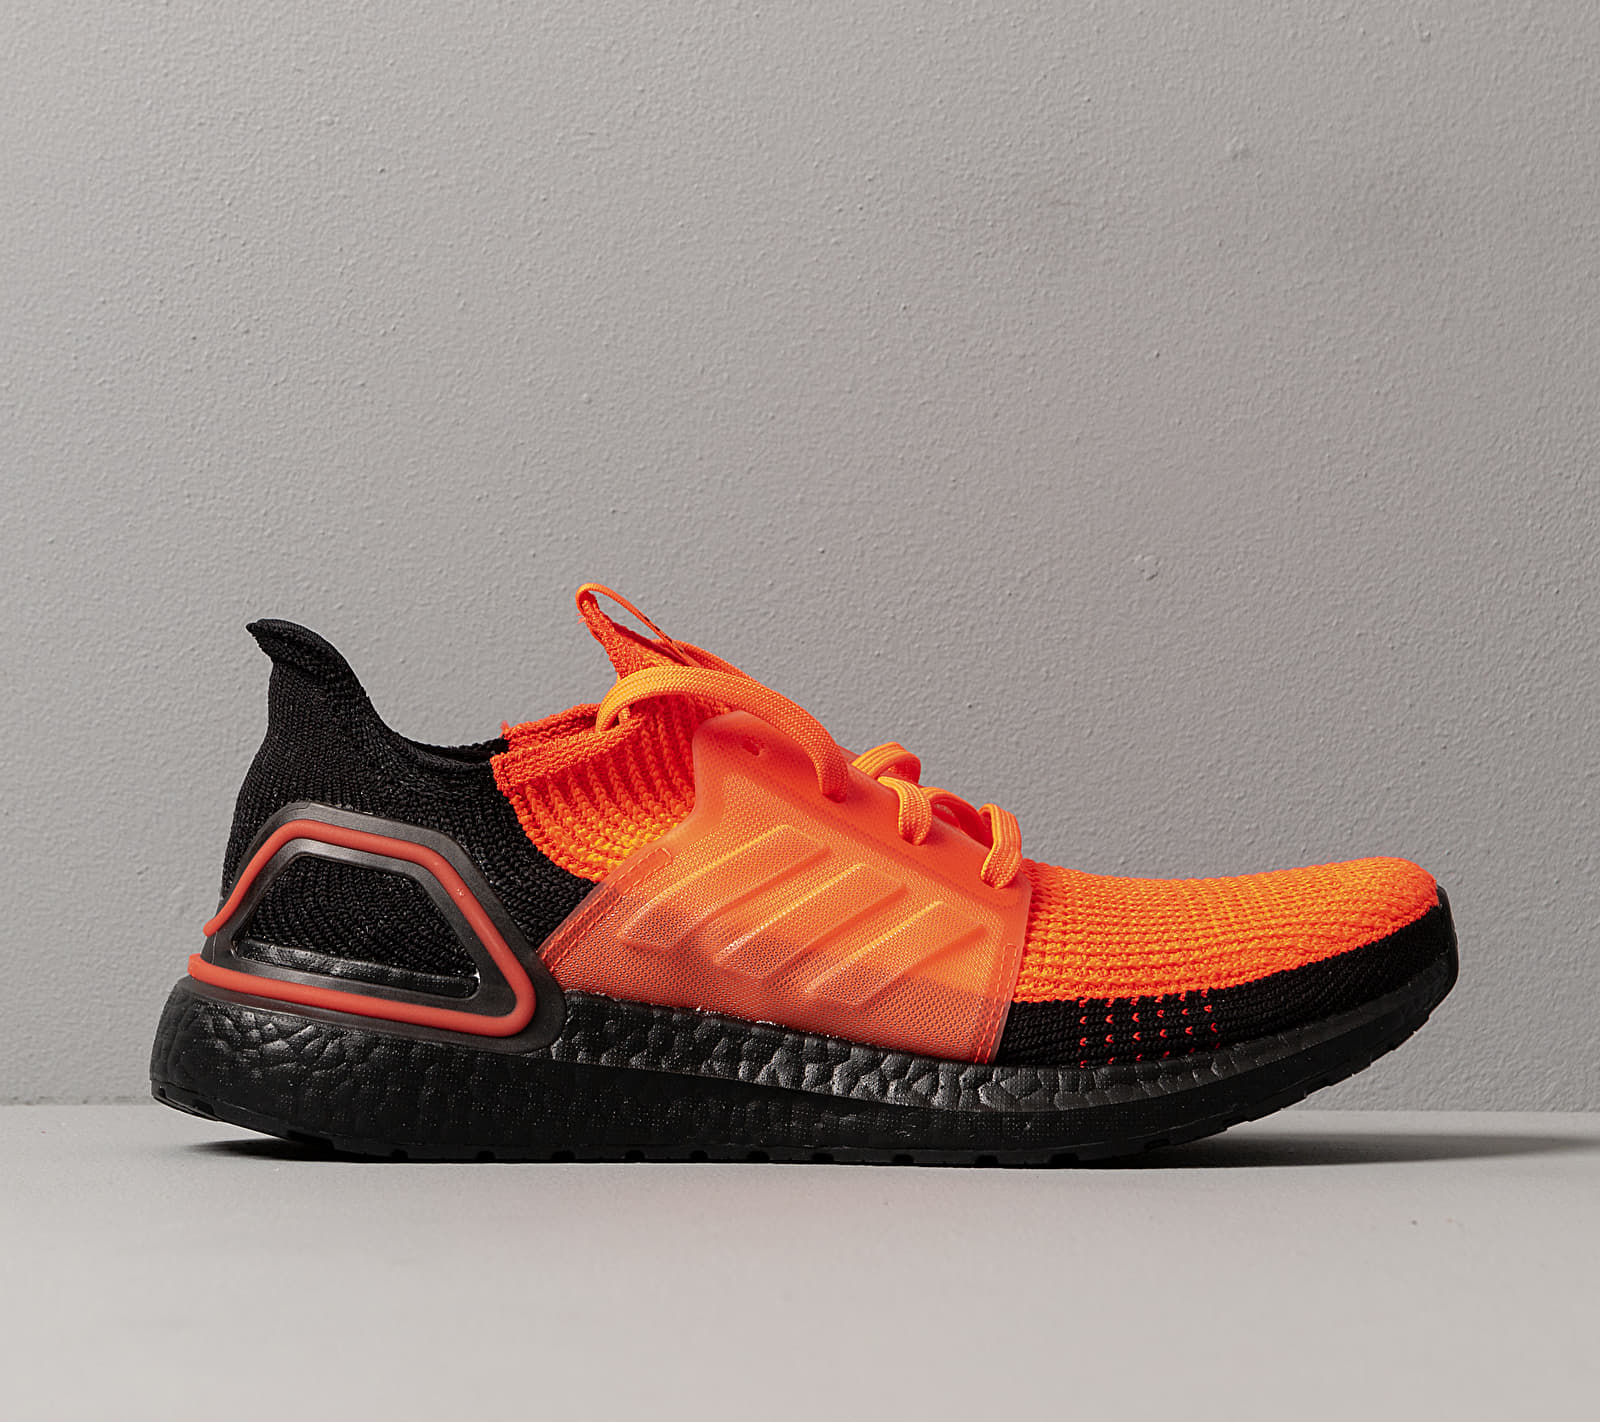 adidas UltraBOOST 19 M Solar Red/ Core Black/ Solar Red